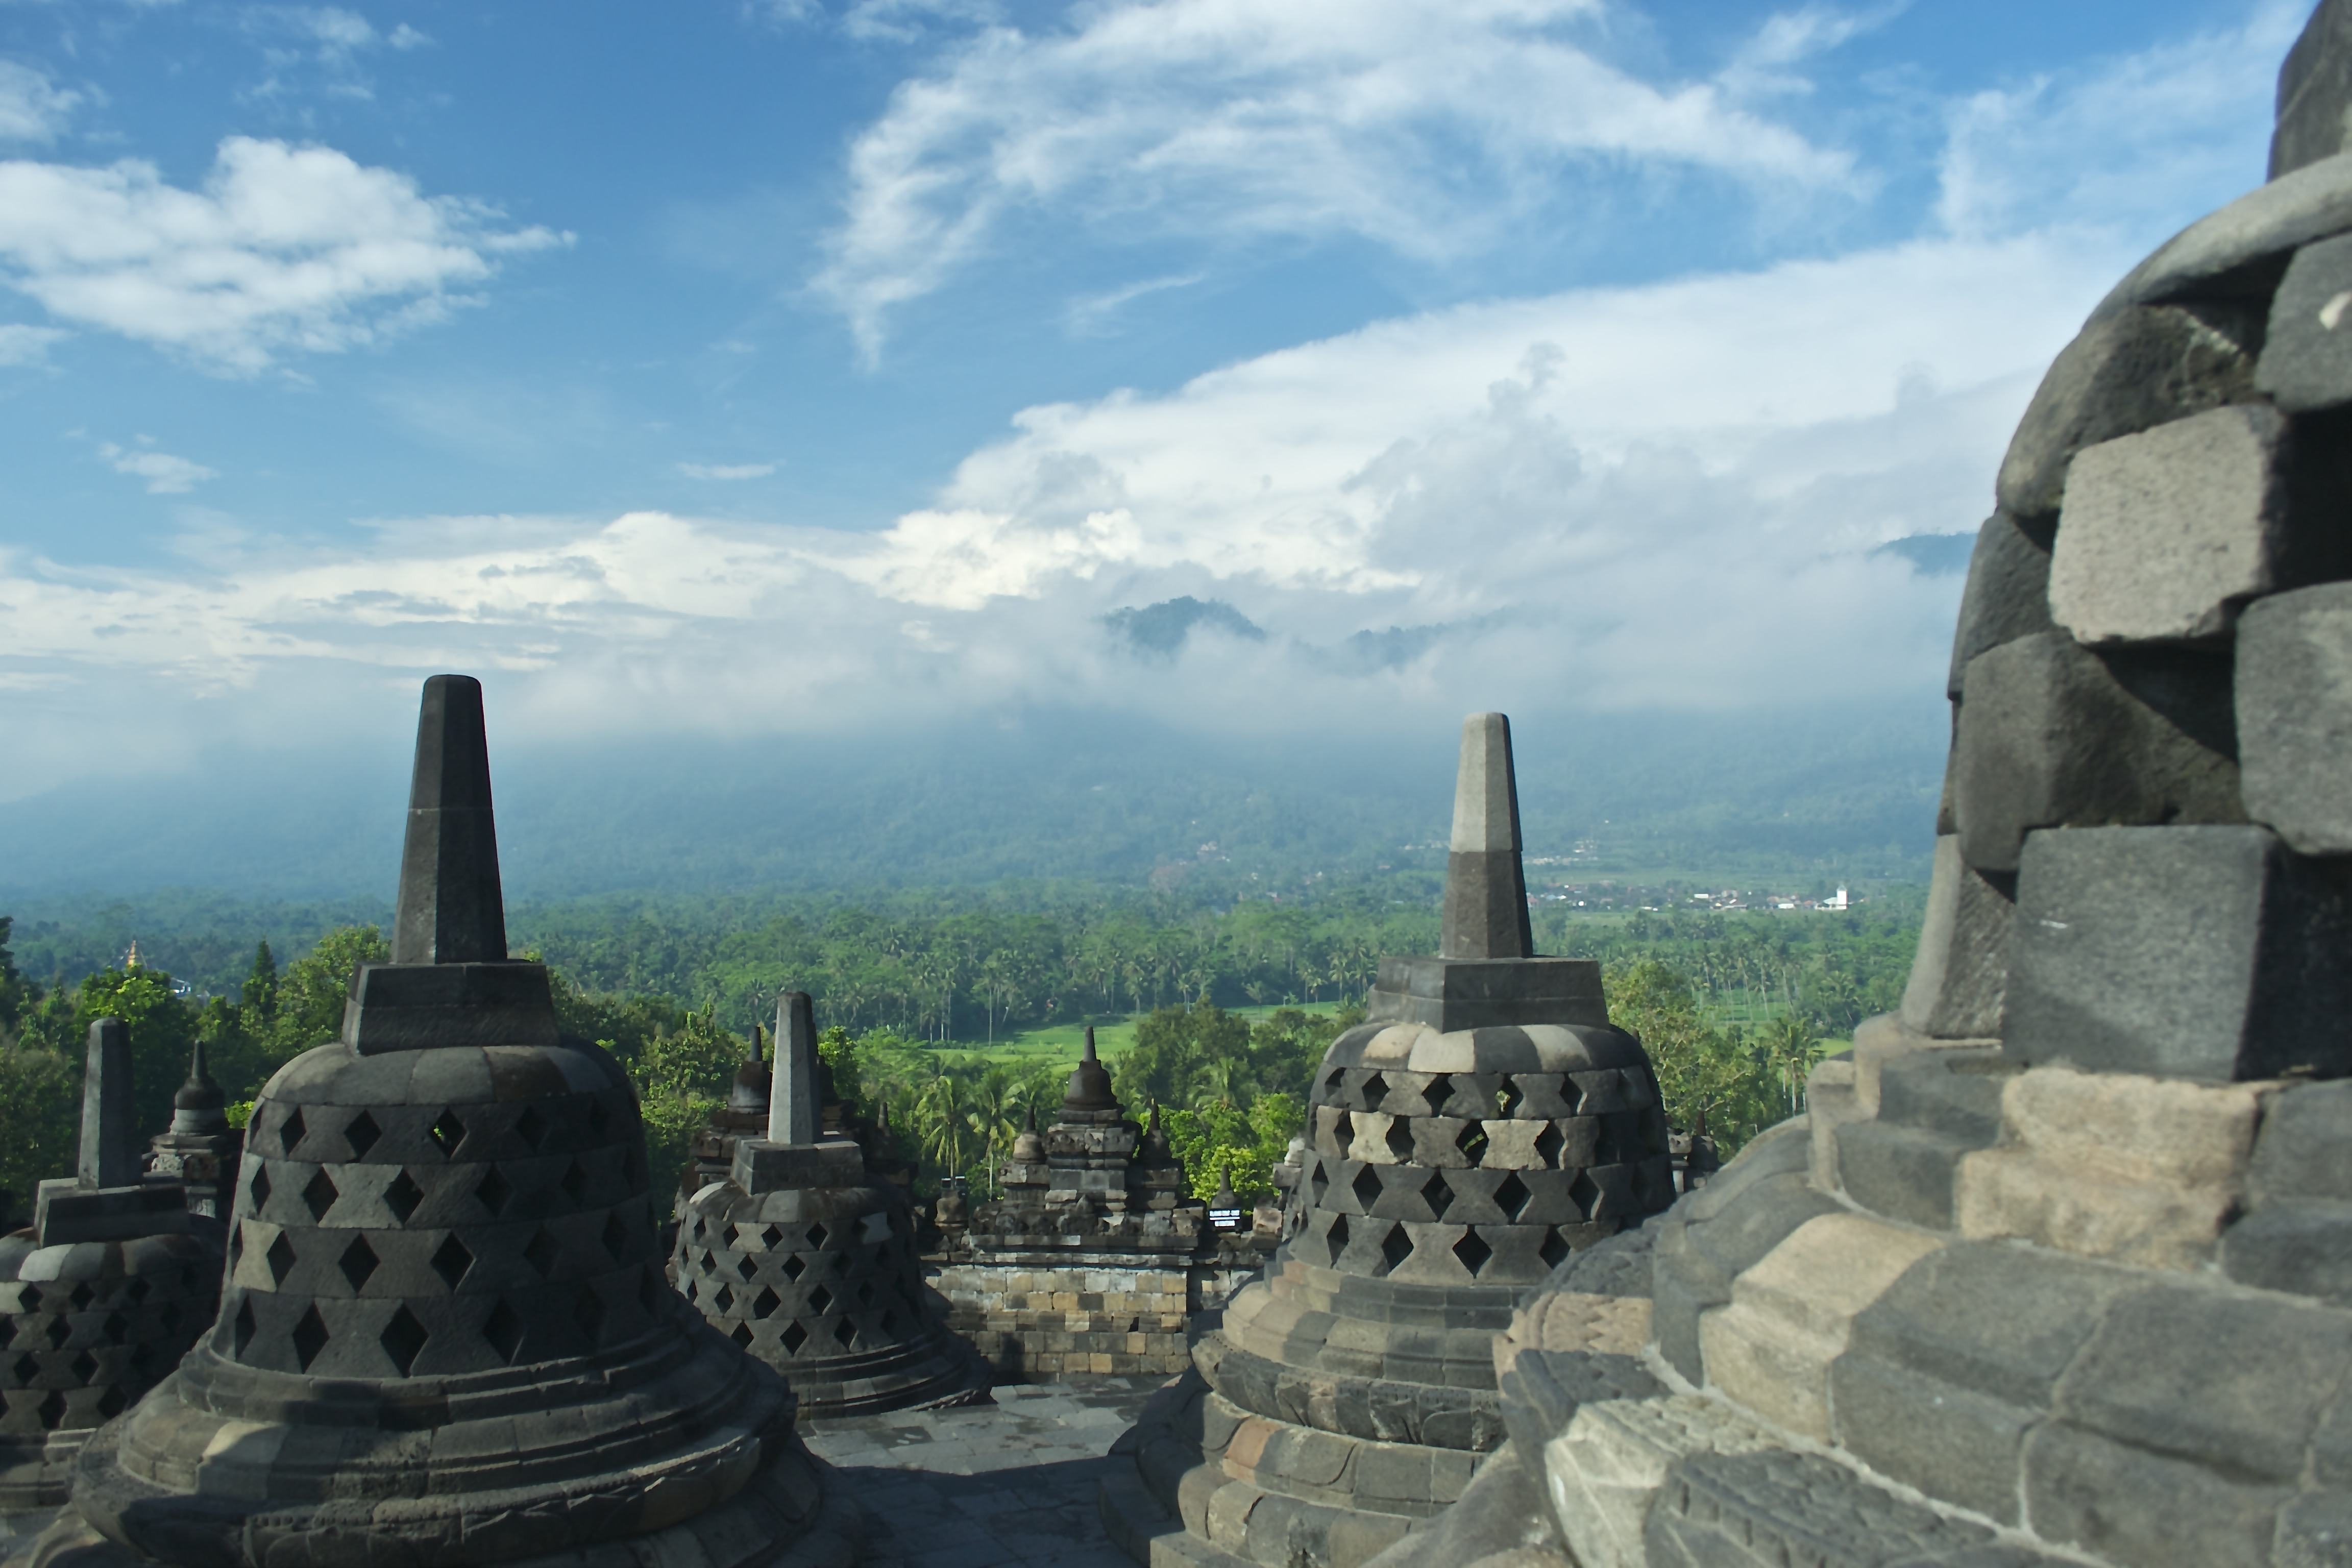 One of the many views of Candi Borobudur.